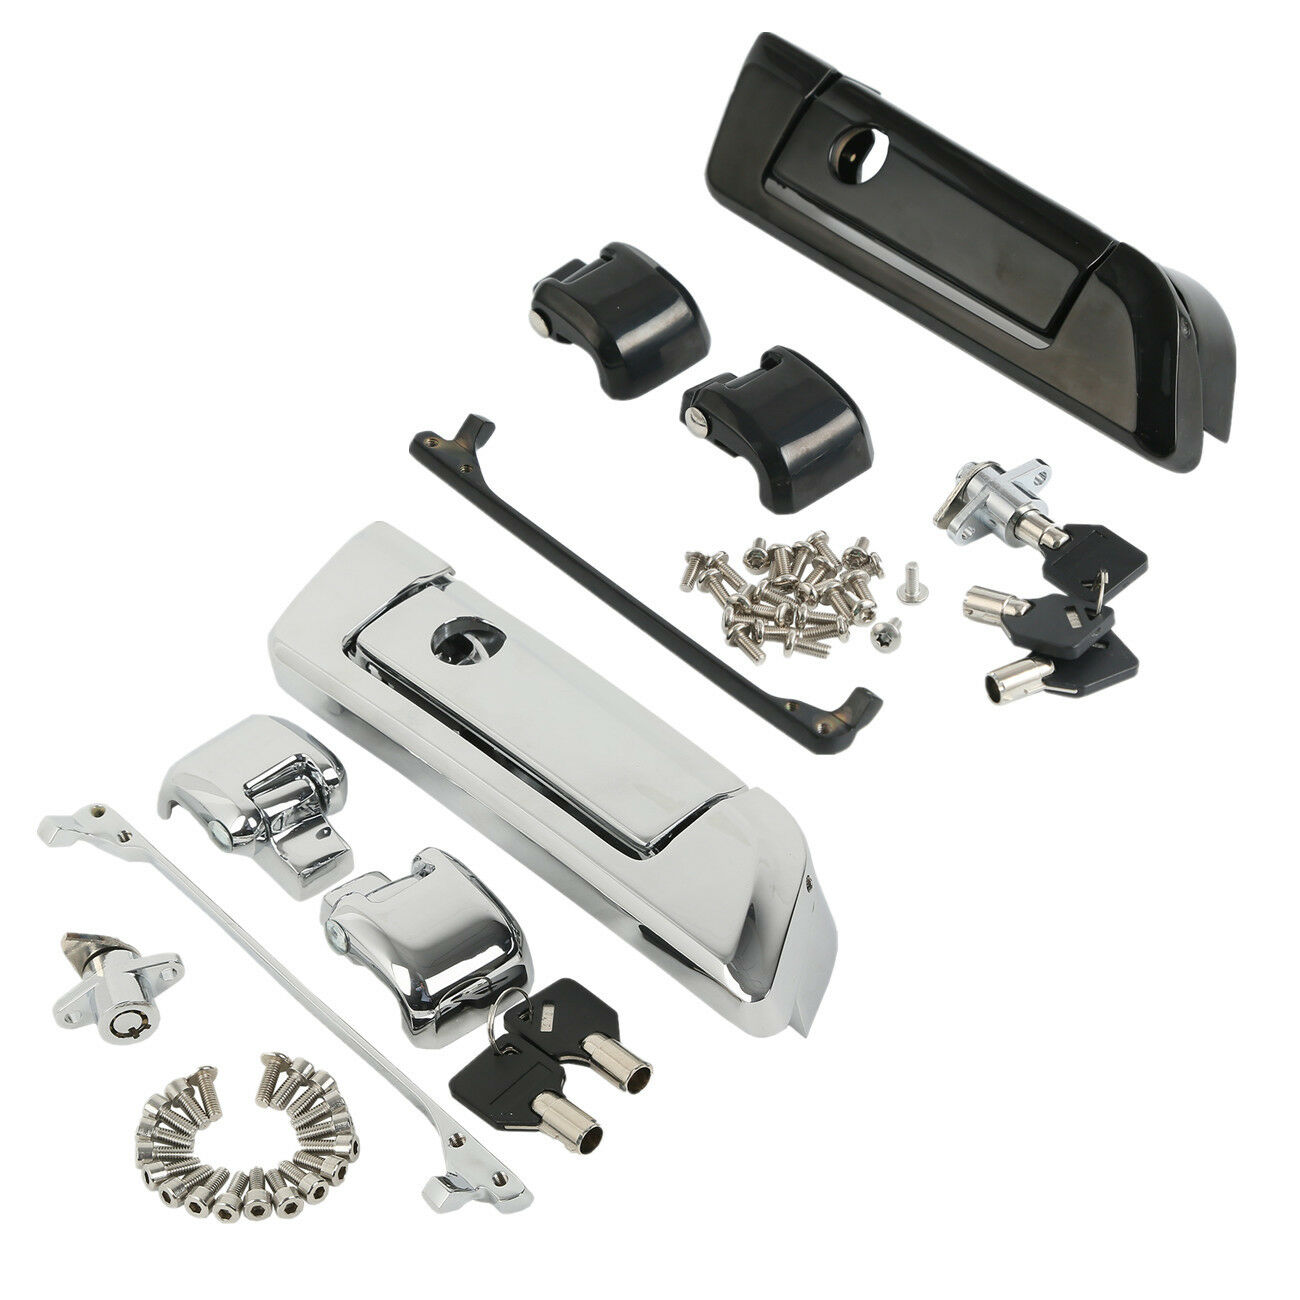 Motorcycle Pack Trunk Latch For Harley Tour Pak Touring Road King Street Glide Electra Ultra-Classic FLHT FLHX 2014-2020 17 16